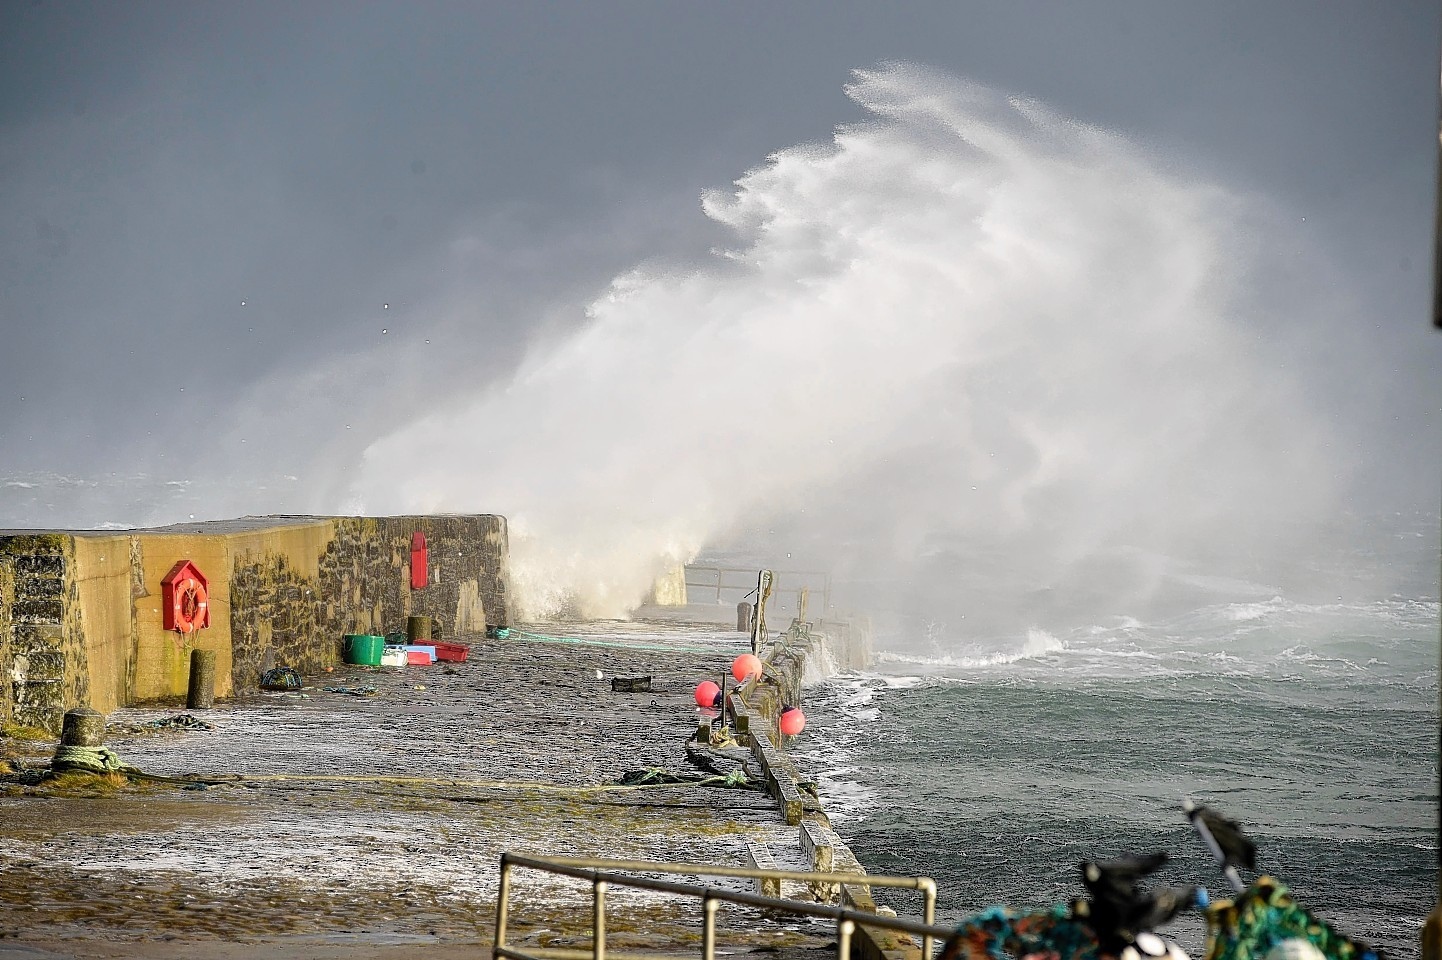 High winds also whipped up the sea at Rosehearty